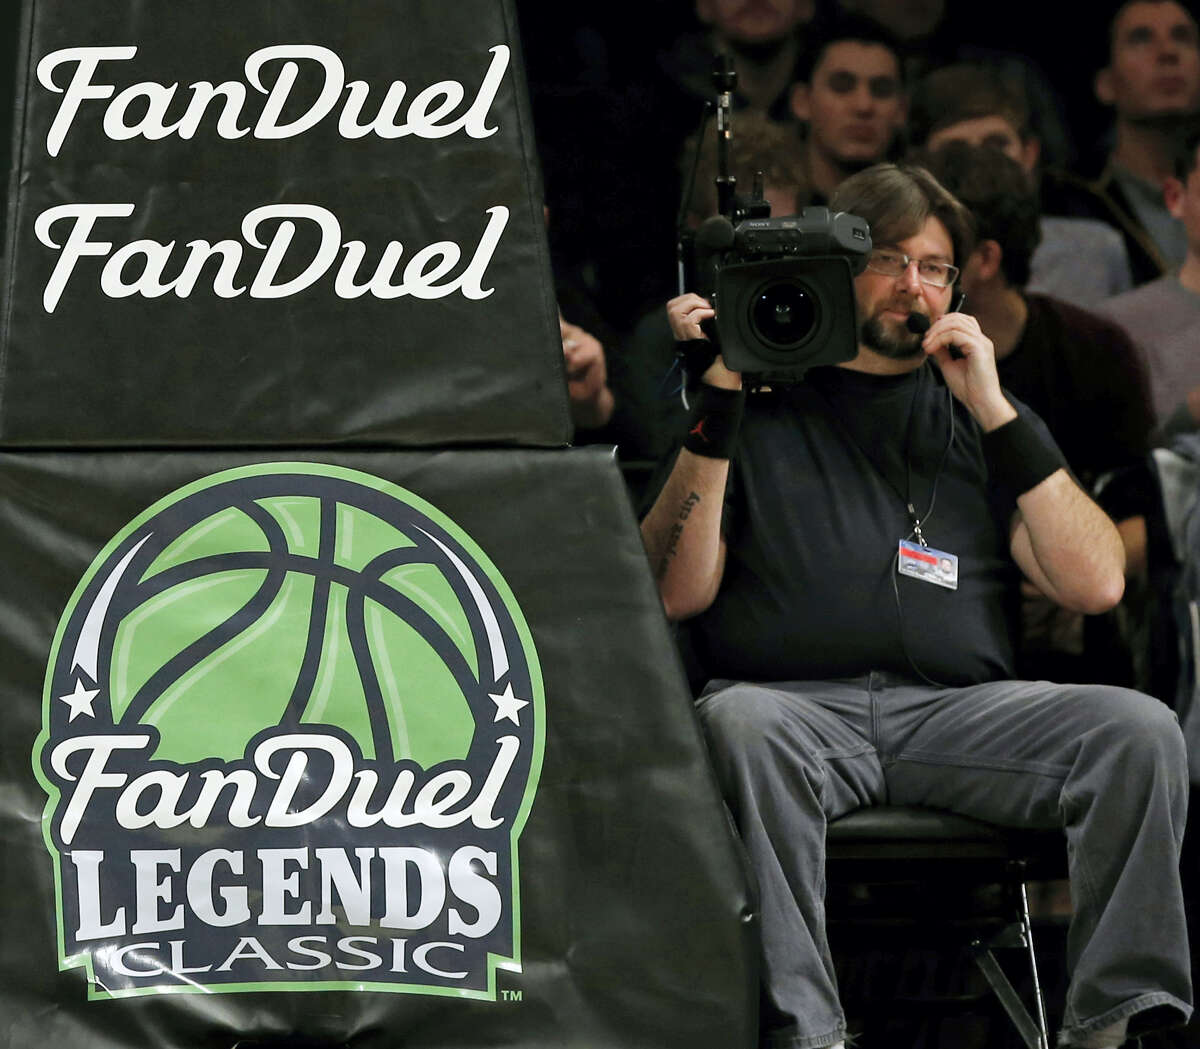 FILE - In this Nov. 24, 2015 file photo, FanDuel advertising covers the post at an NCAA college basketball matchup in the FanDuel Legends Classic consolation game, at the Barclays Center in New York. Daily fantasy sports rivals DraftKings and FanDuel have agreed to merge after months of speculation and increasing regulatory scrutiny. The two companies made the announcement Friday, Nov. 18, 2016, saying the combined organization would be able to reduce costs as they work to become profitable and battle with regulators across the country to remain legal.